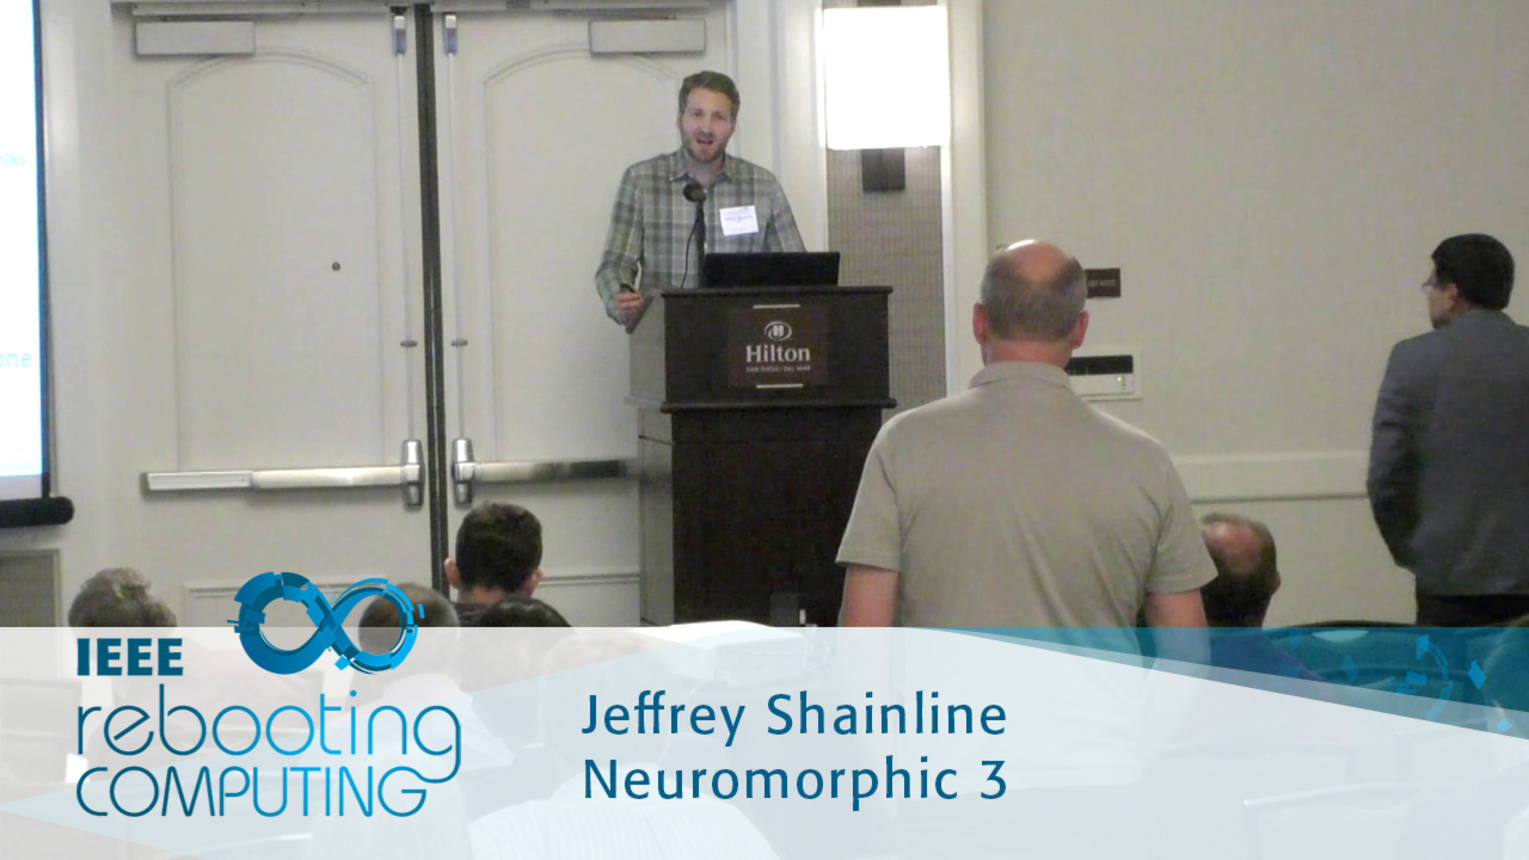 Neuromorphic computing with integrated photonics and superconductors - Jeffrey Shainline: 2016 International Conference on Rebooting Computing